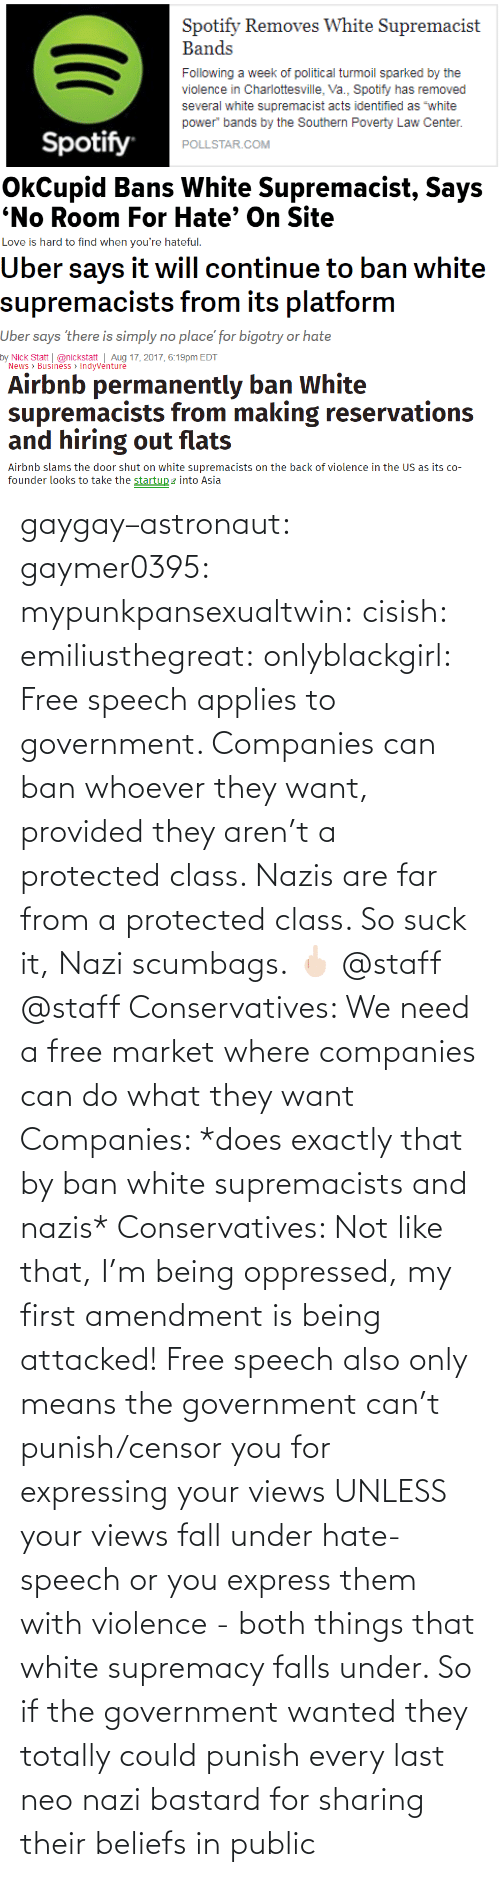 Fall, Gif, and Tumblr: gaygay–astronaut: gaymer0395:  mypunkpansexualtwin:  cisish:  emiliusthegreat:  onlyblackgirl:   Free speech applies to government. Companies can ban whoever they want, provided they aren't a protected class. Nazis are far from a protected class. So suck it, Nazi scumbags. 🖕🏻   @staff      @staff     Conservatives: We need a free market where companies can do what they want Companies: *does exactly that by ban white supremacists and nazis* Conservatives: Not like that, I'm being oppressed, my first amendment is being attacked!  Free speech also only means the government can't punish/censor you for expressing your views UNLESS your views fall under hate-speech or you express them with violence - both things that white supremacy falls under. So if the government wanted they totally could punish every last neo nazi bastard for sharing their beliefs in public